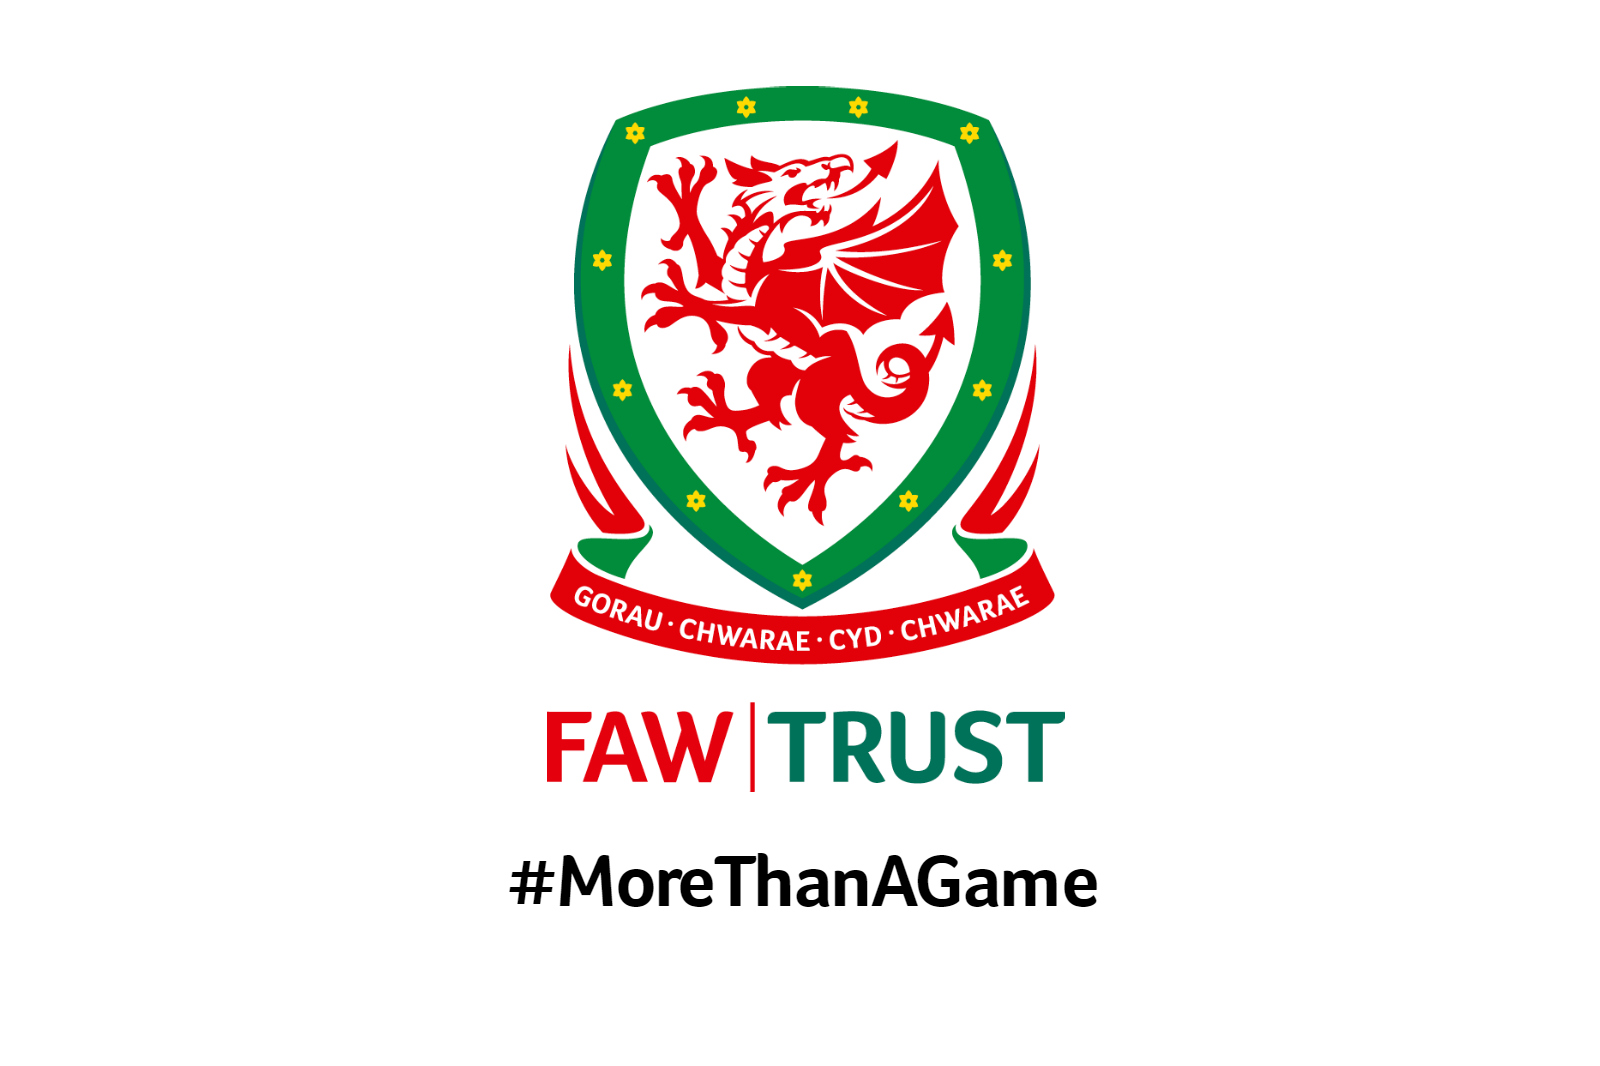 The FAW Trust is hiring a Head of Football Development